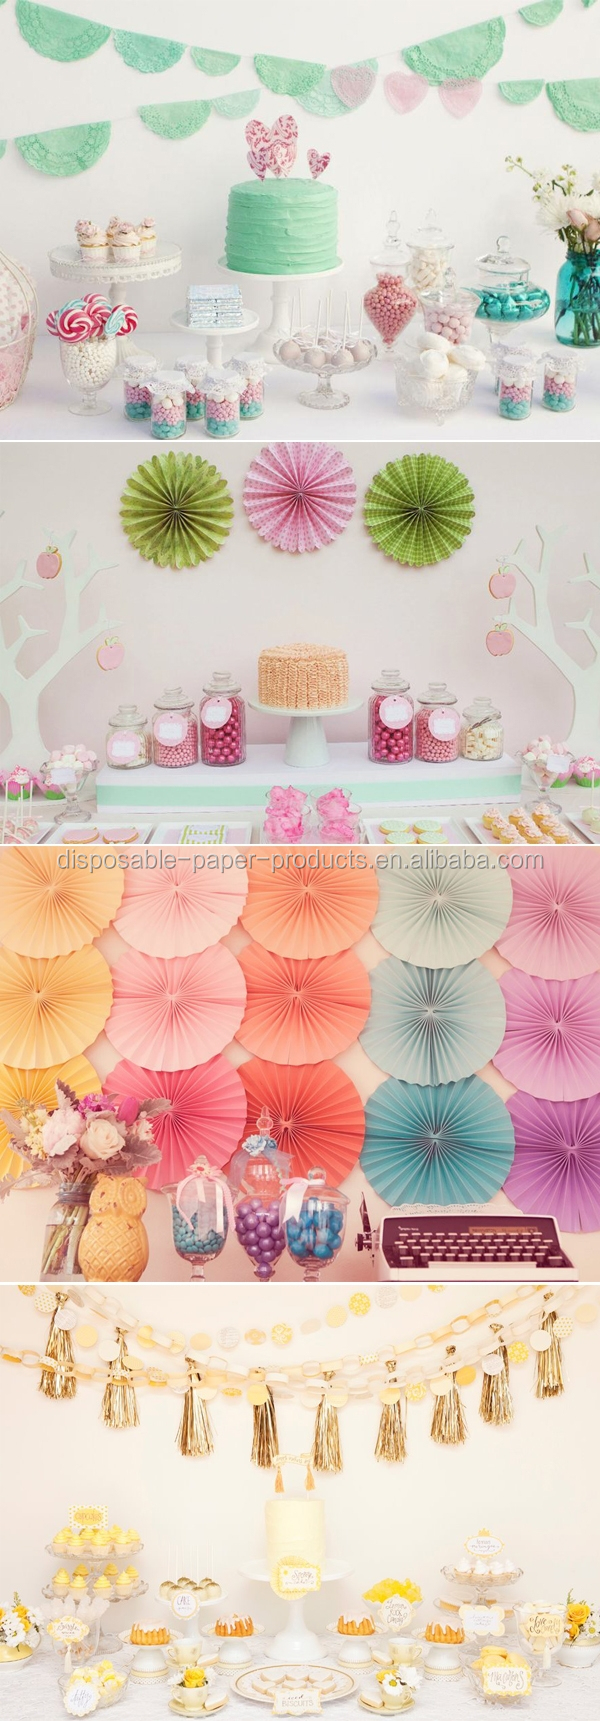 Birthday party backdrop tissue paper pom poms product on alibaba com - Green White Blue Pom Poms Tissue Paper Pom Poms Dessert Tables Decorations Little Girly Party Decorations